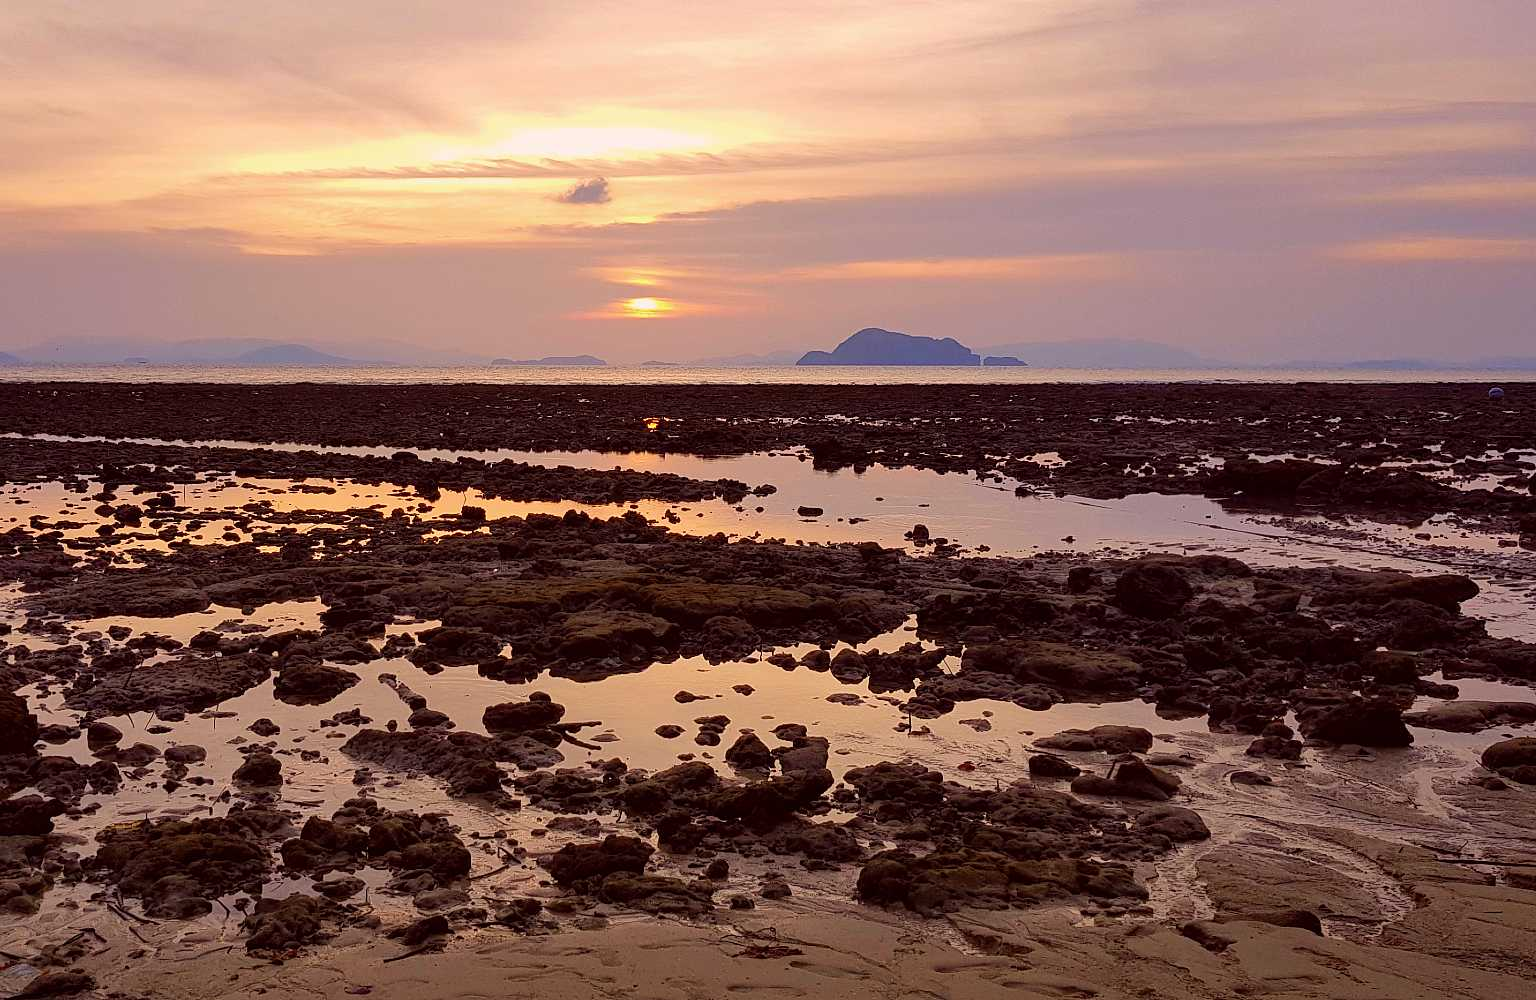 KoH Yao Yai, beach at low tide with withdrawn sea